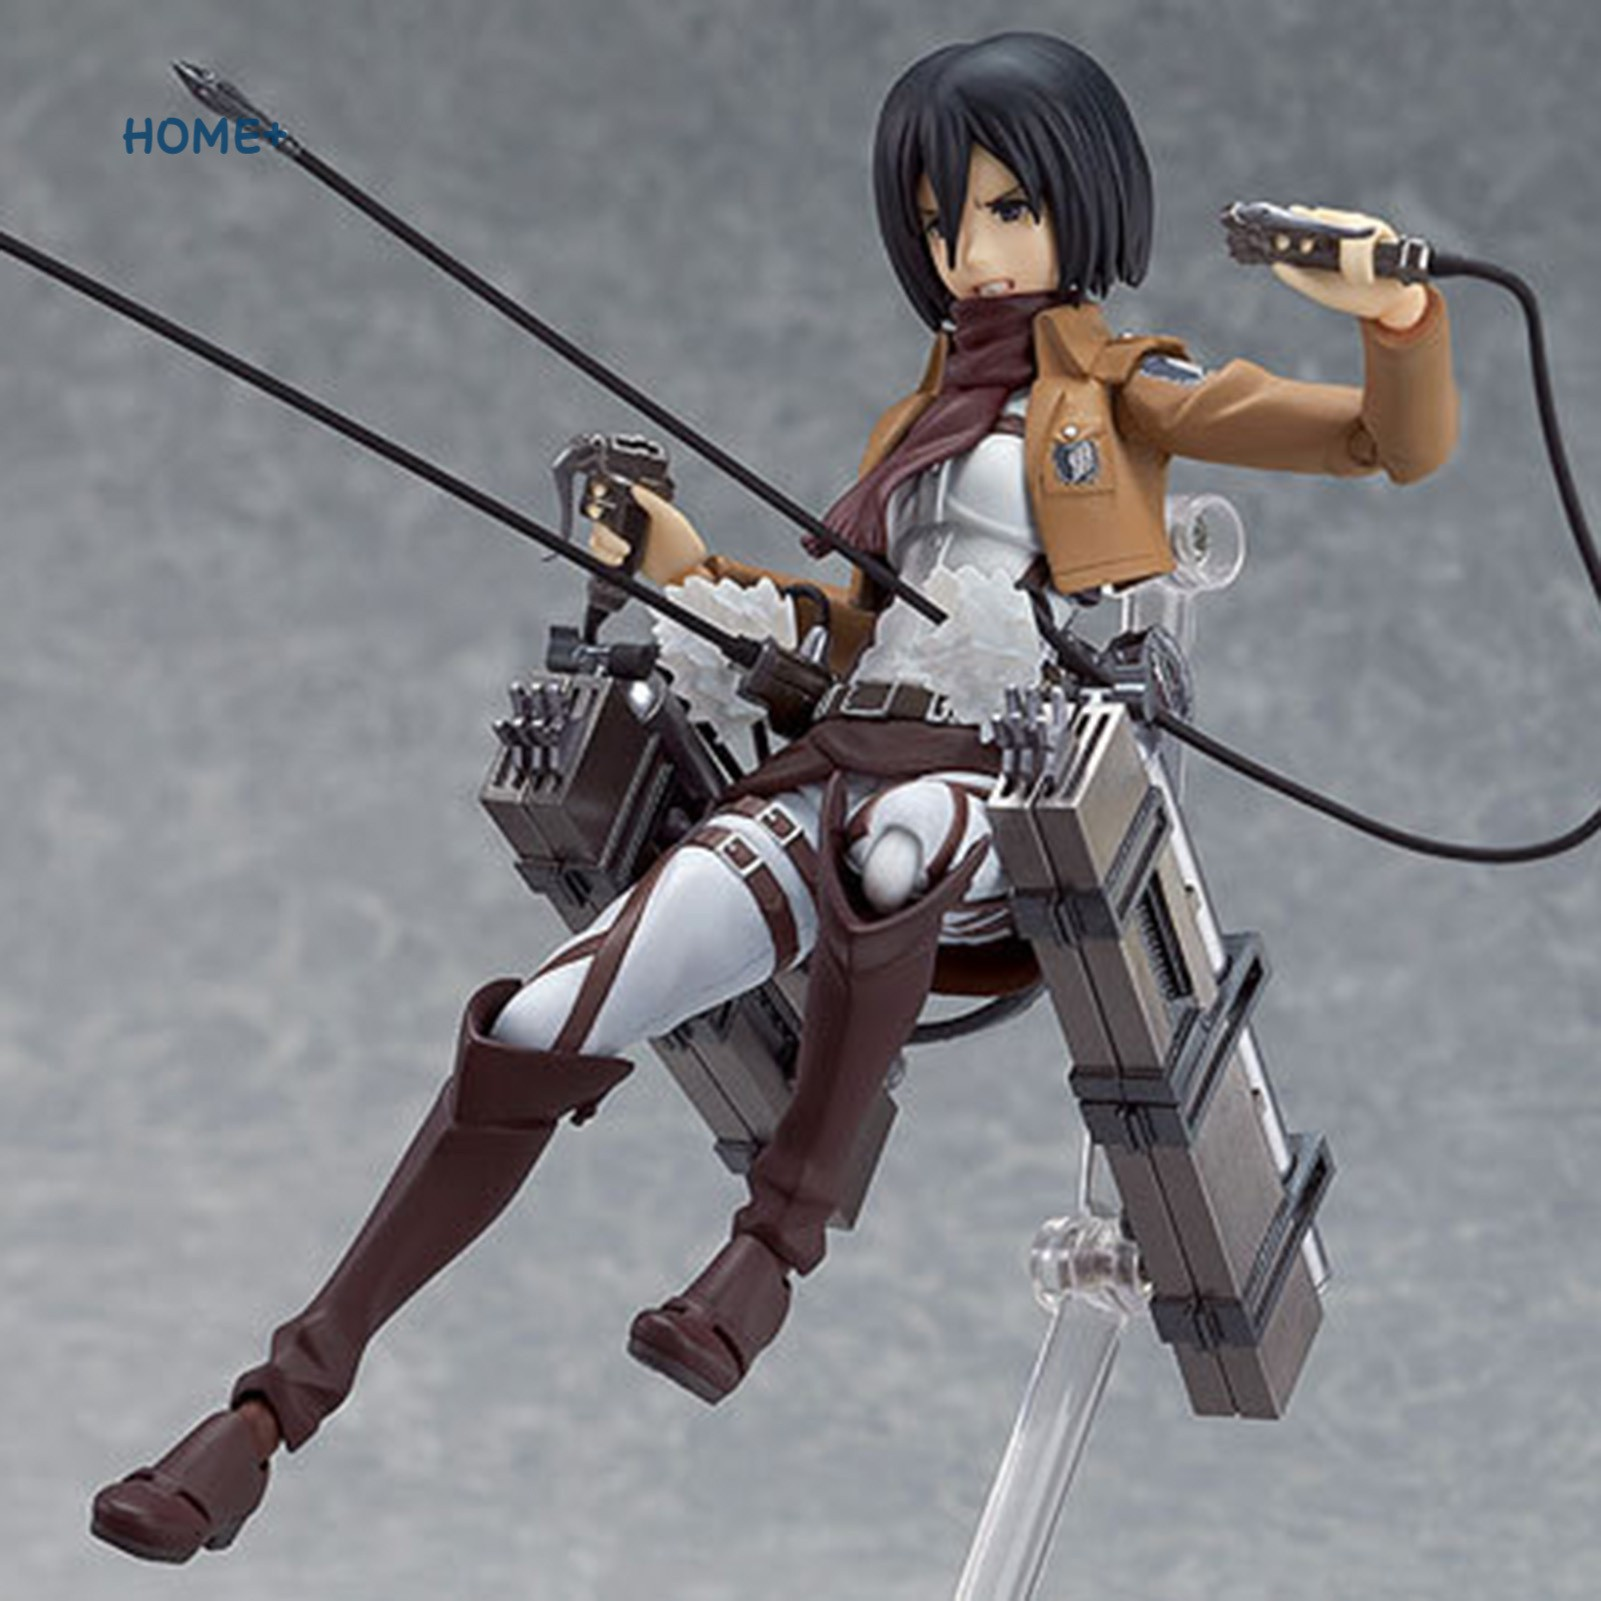 Tsuc Attack on Titan Mikasa Ackerman PVC Figure Changeable Face Anime Action Figure Model Toy @vn